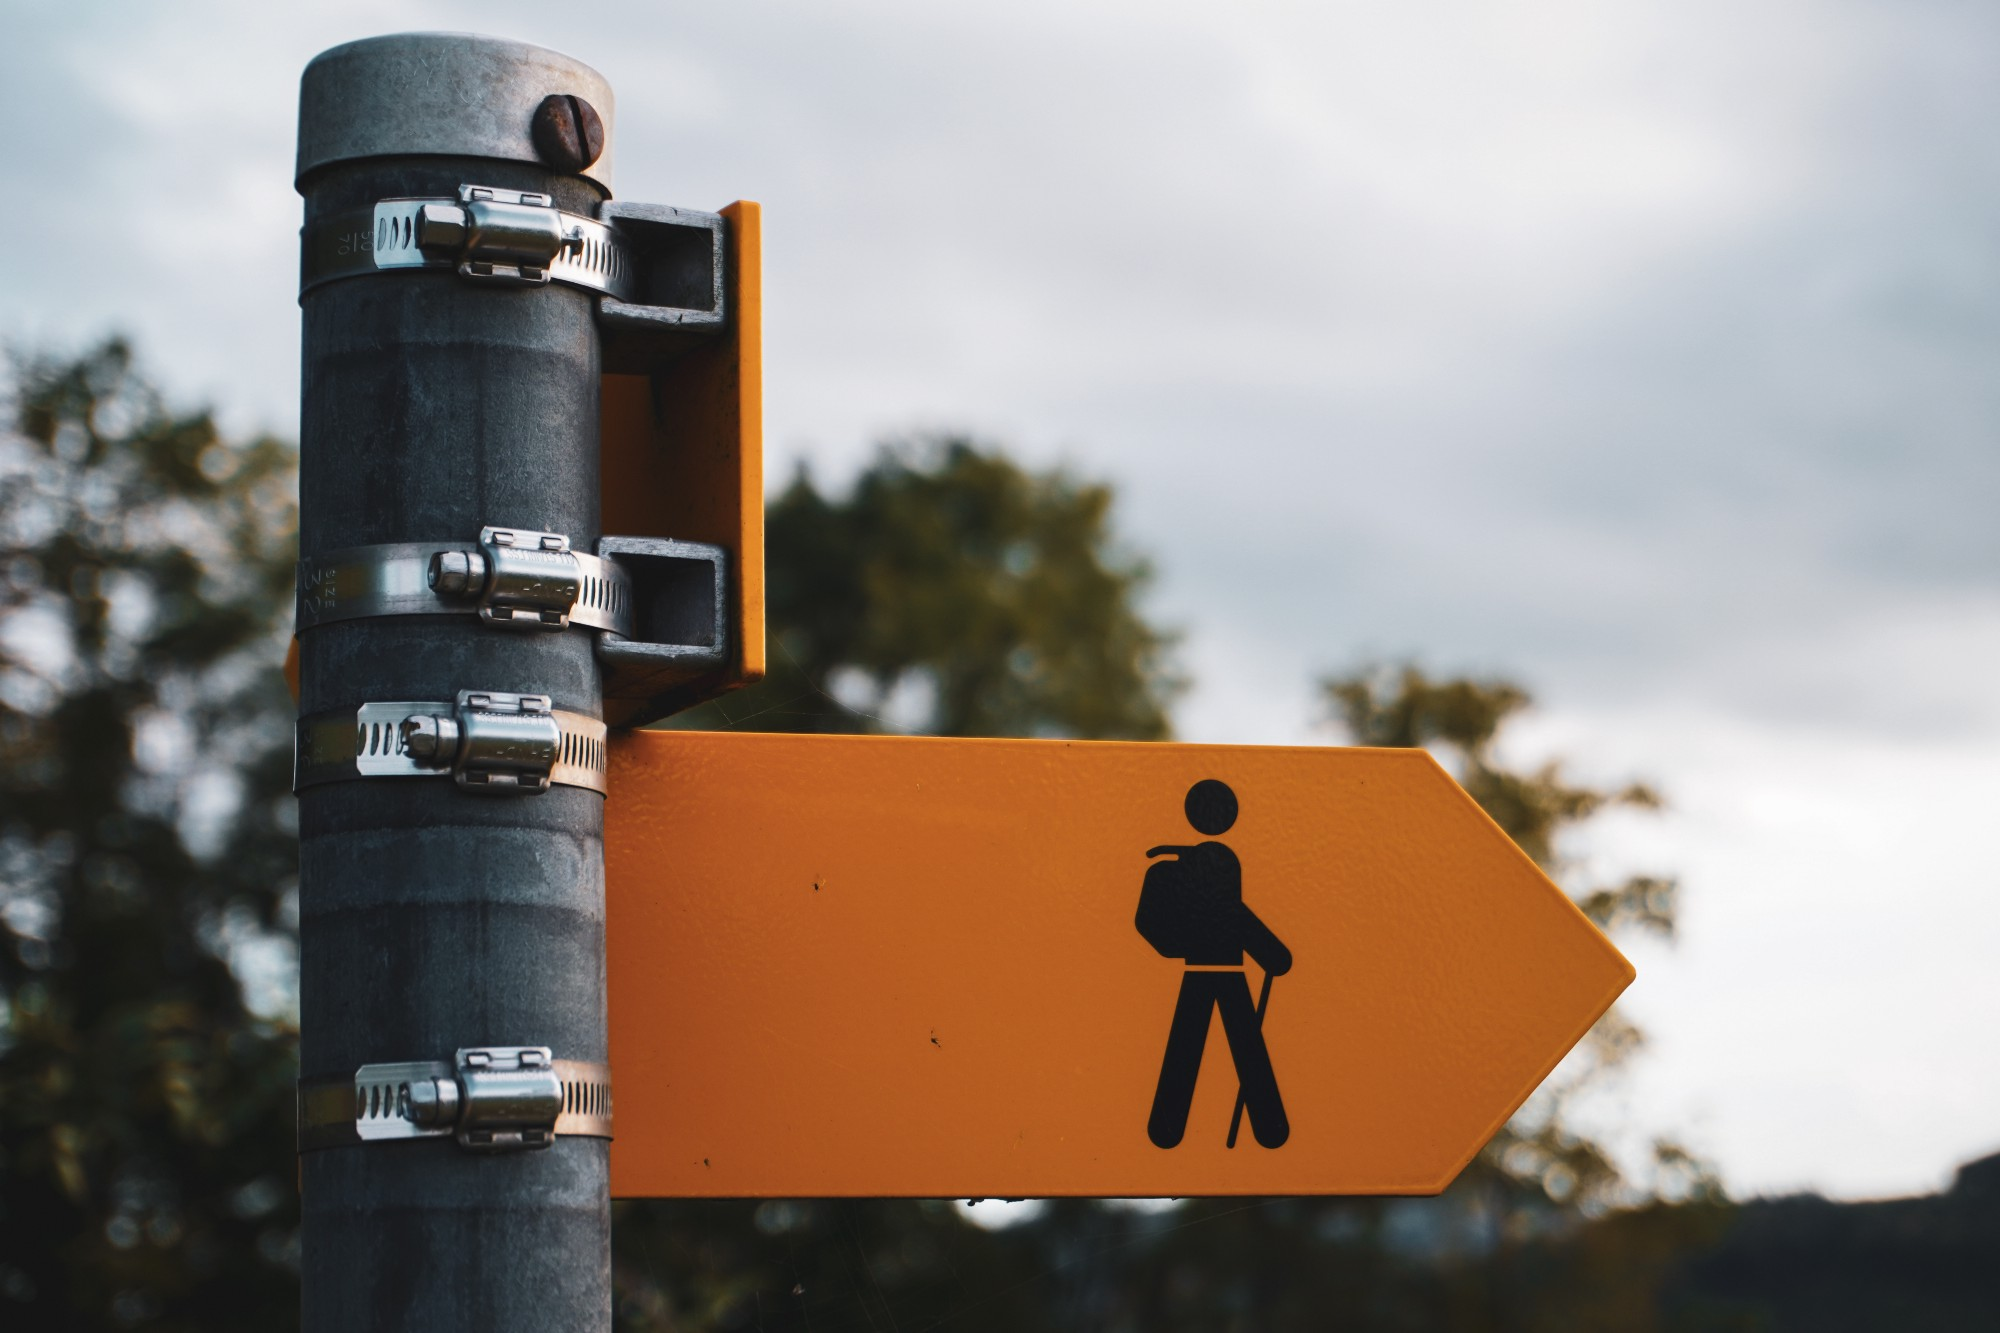 Arrow sign with a man on it